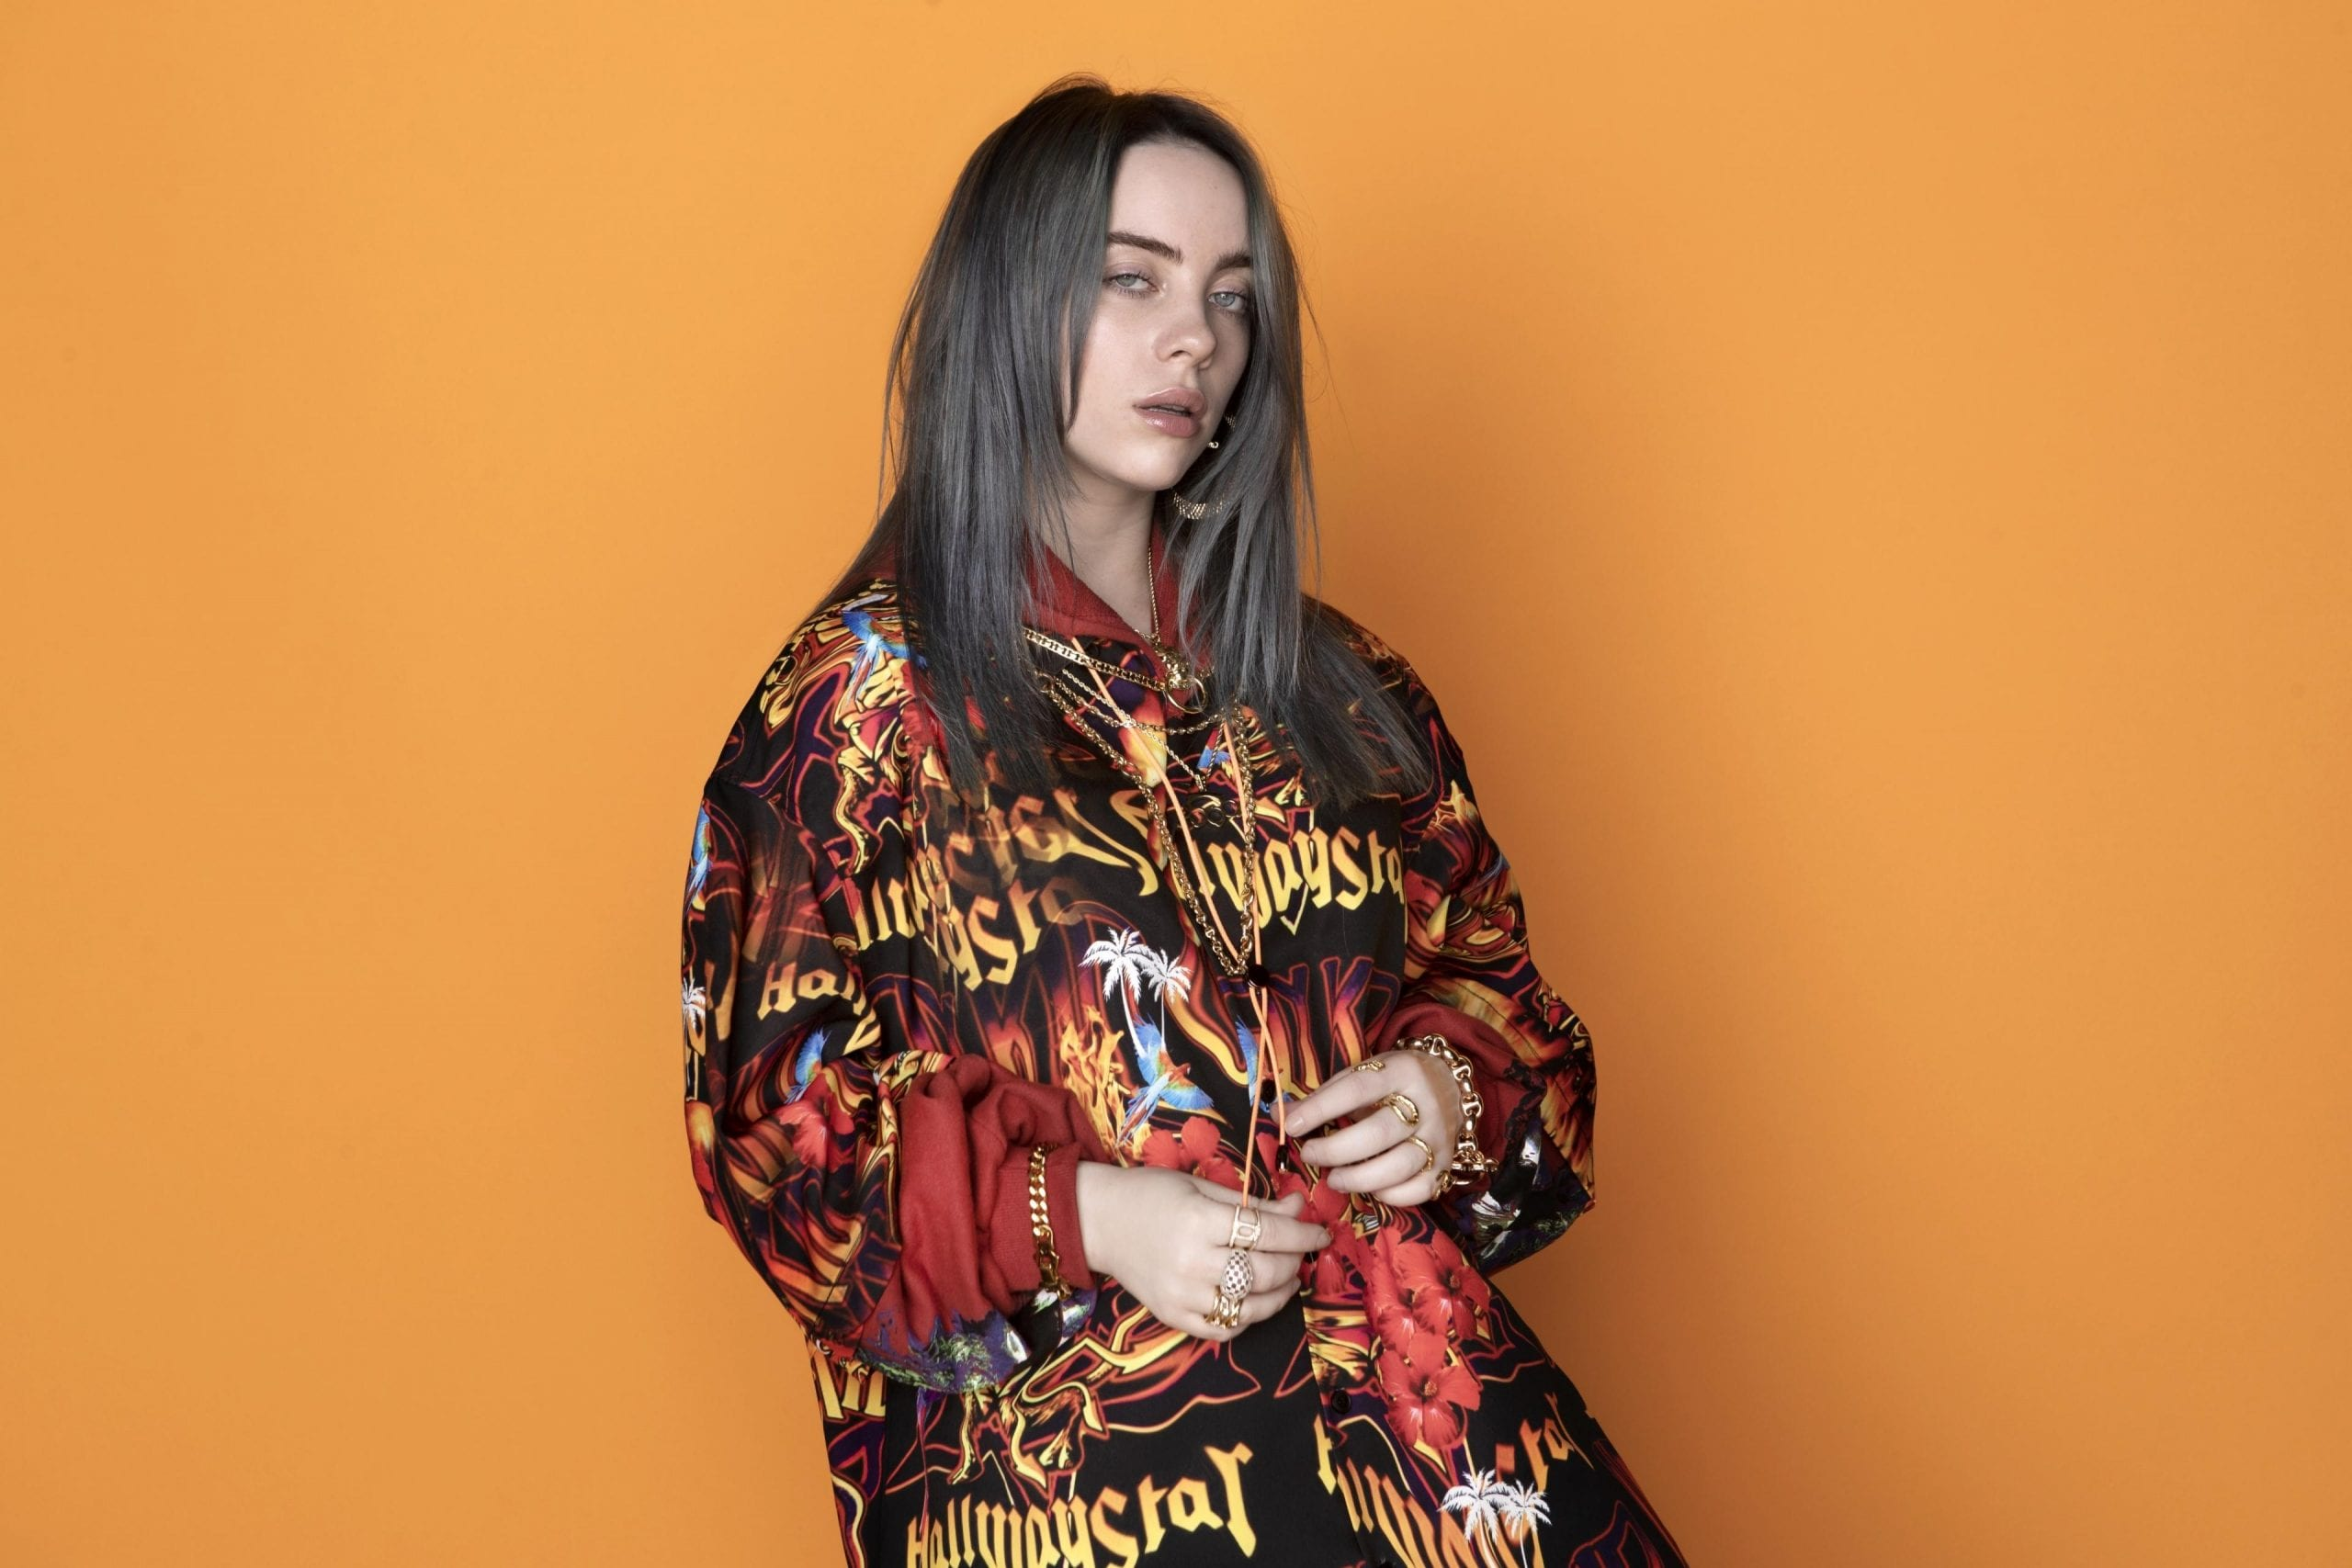 Billie Eilish Lost Cause Video-The Much-Talked About Bop